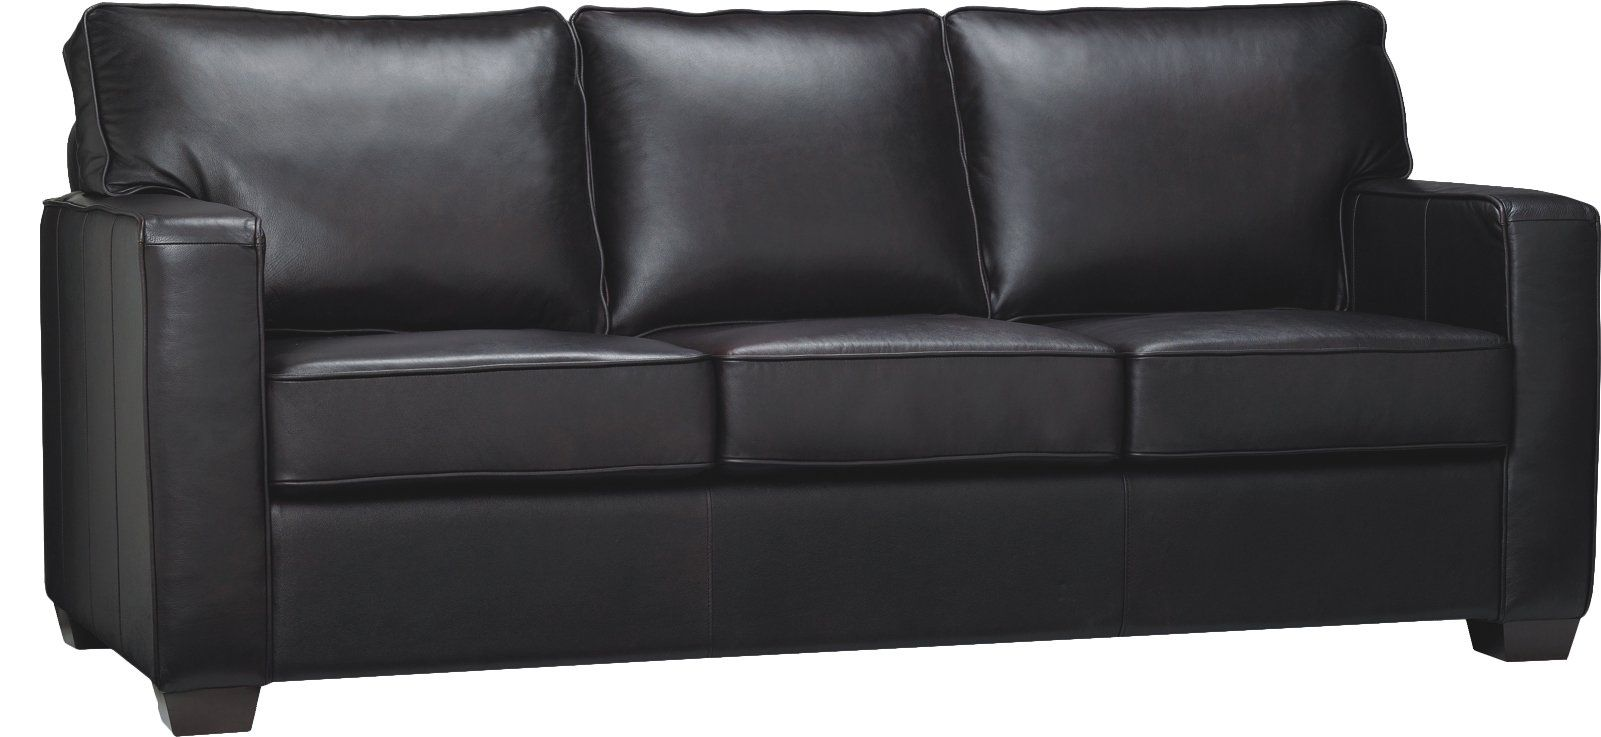 Best Place To Buy Ritter Leather Sleeper Sofa By Sofas To Go Leather Sleeper Sofa Sofa Leather Sofa Bed